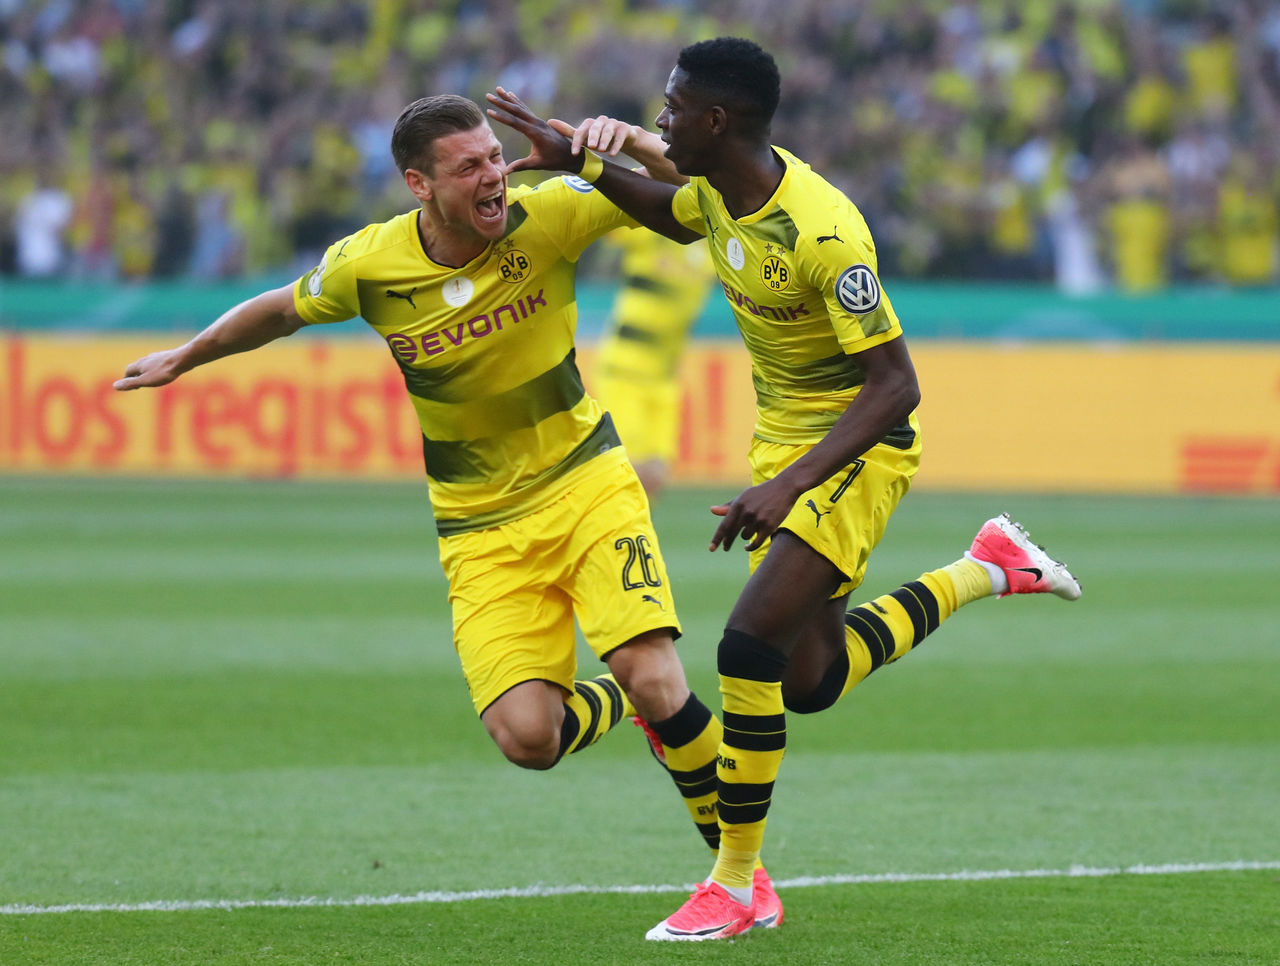 Dortmund CEO €100M not enough for Ousmane Dembele